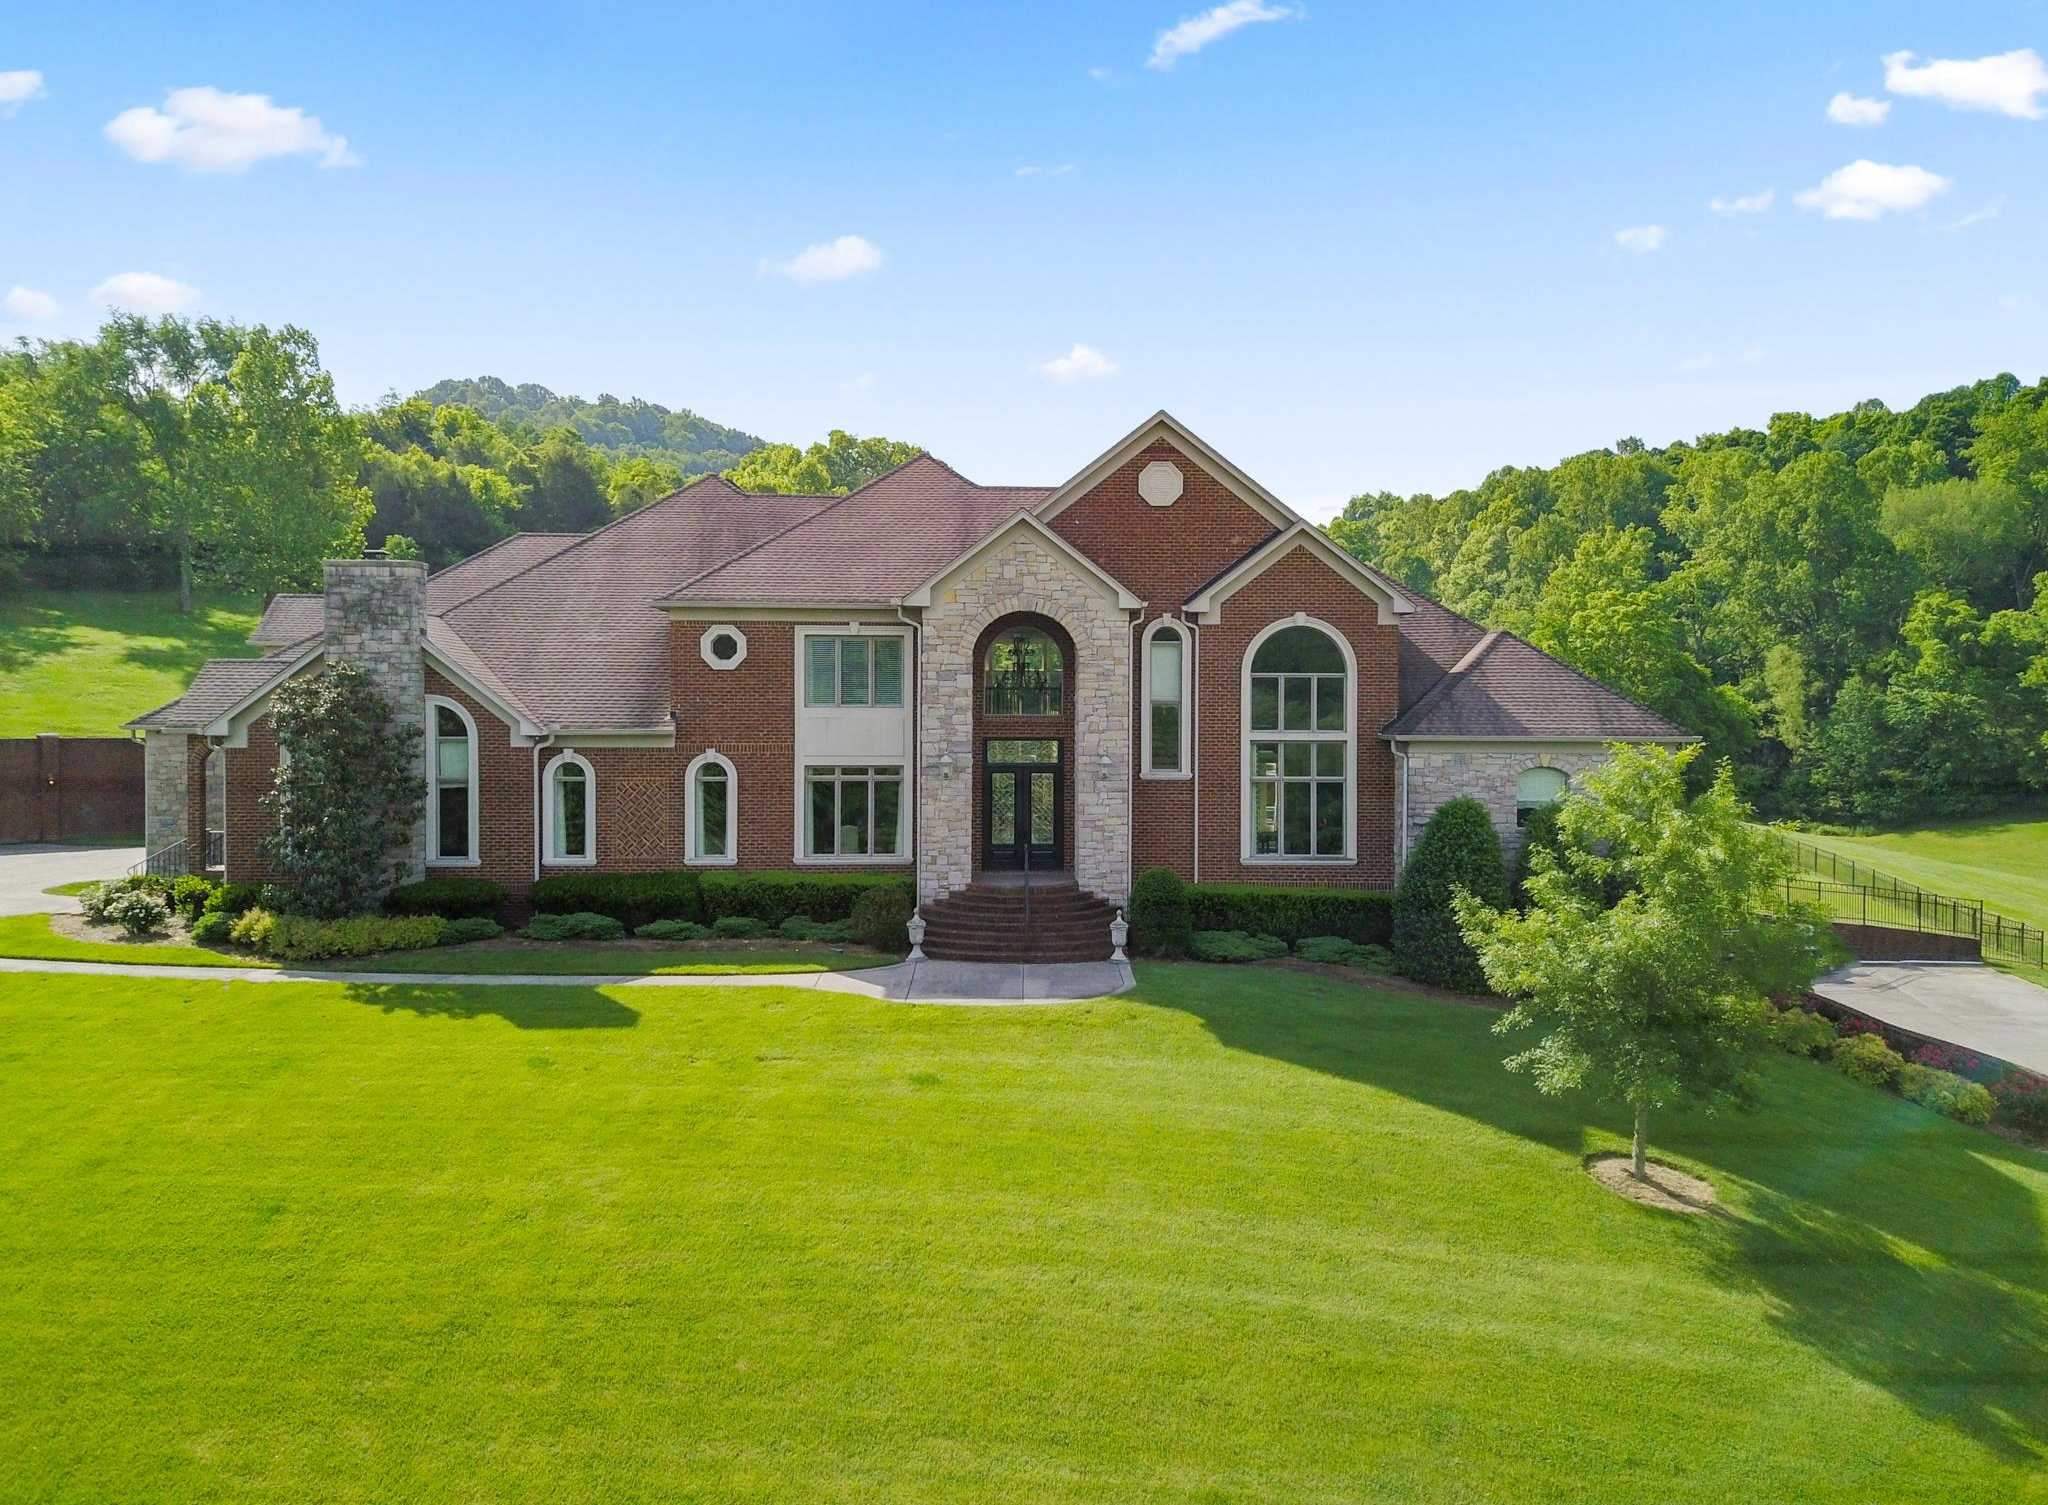 $2,500,000 - 5Br/8Ba -  for Sale in None, Goodlettsville